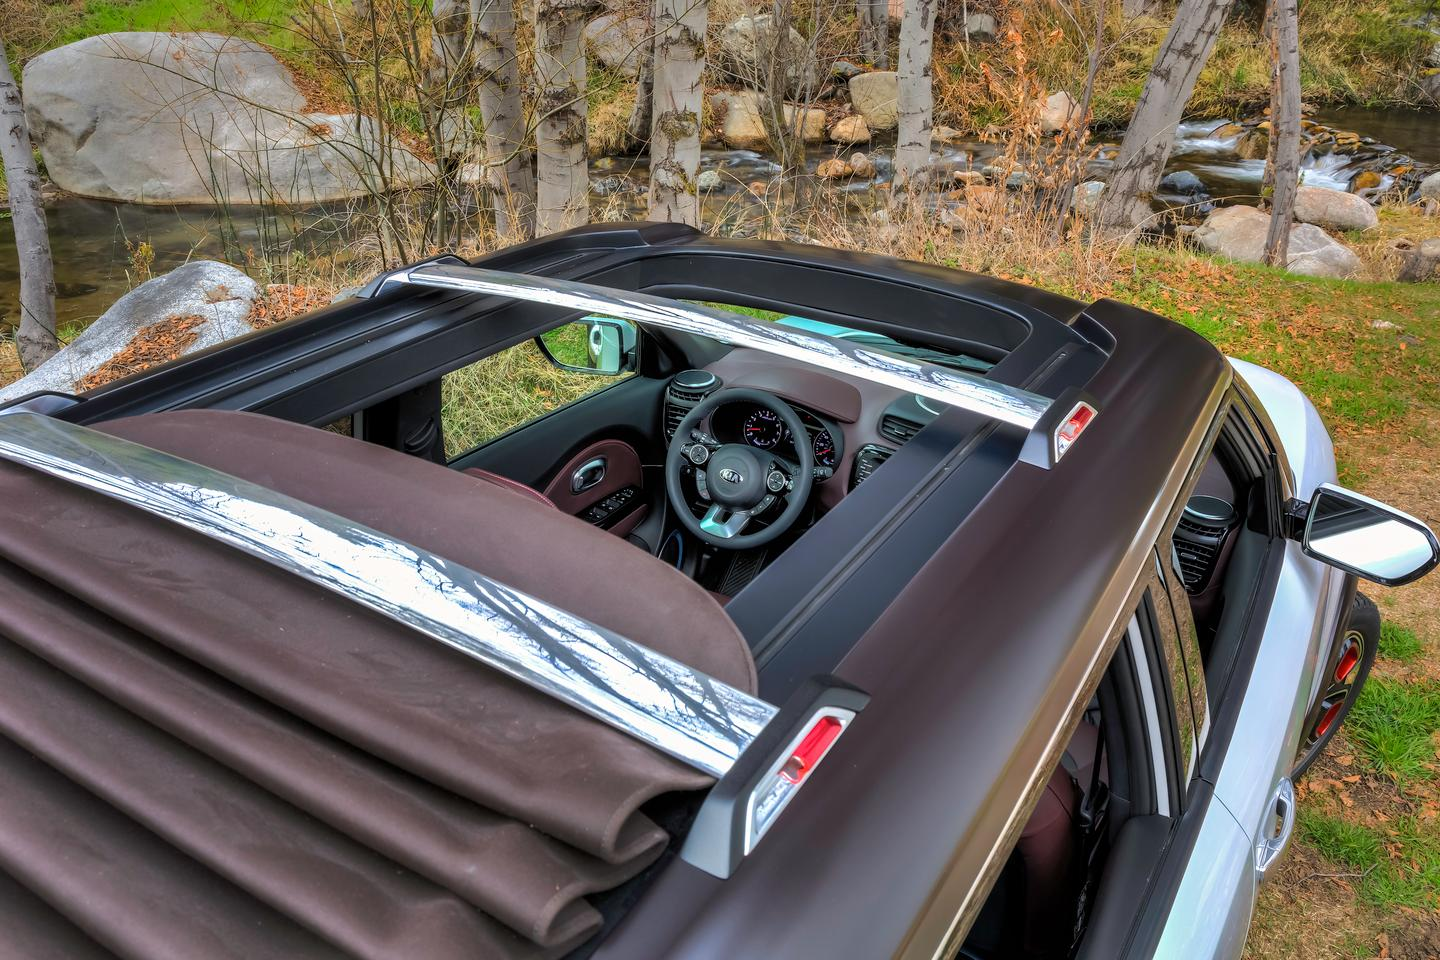 The weatherproof canvas roof gives the Trail'ster an airy convertible feel